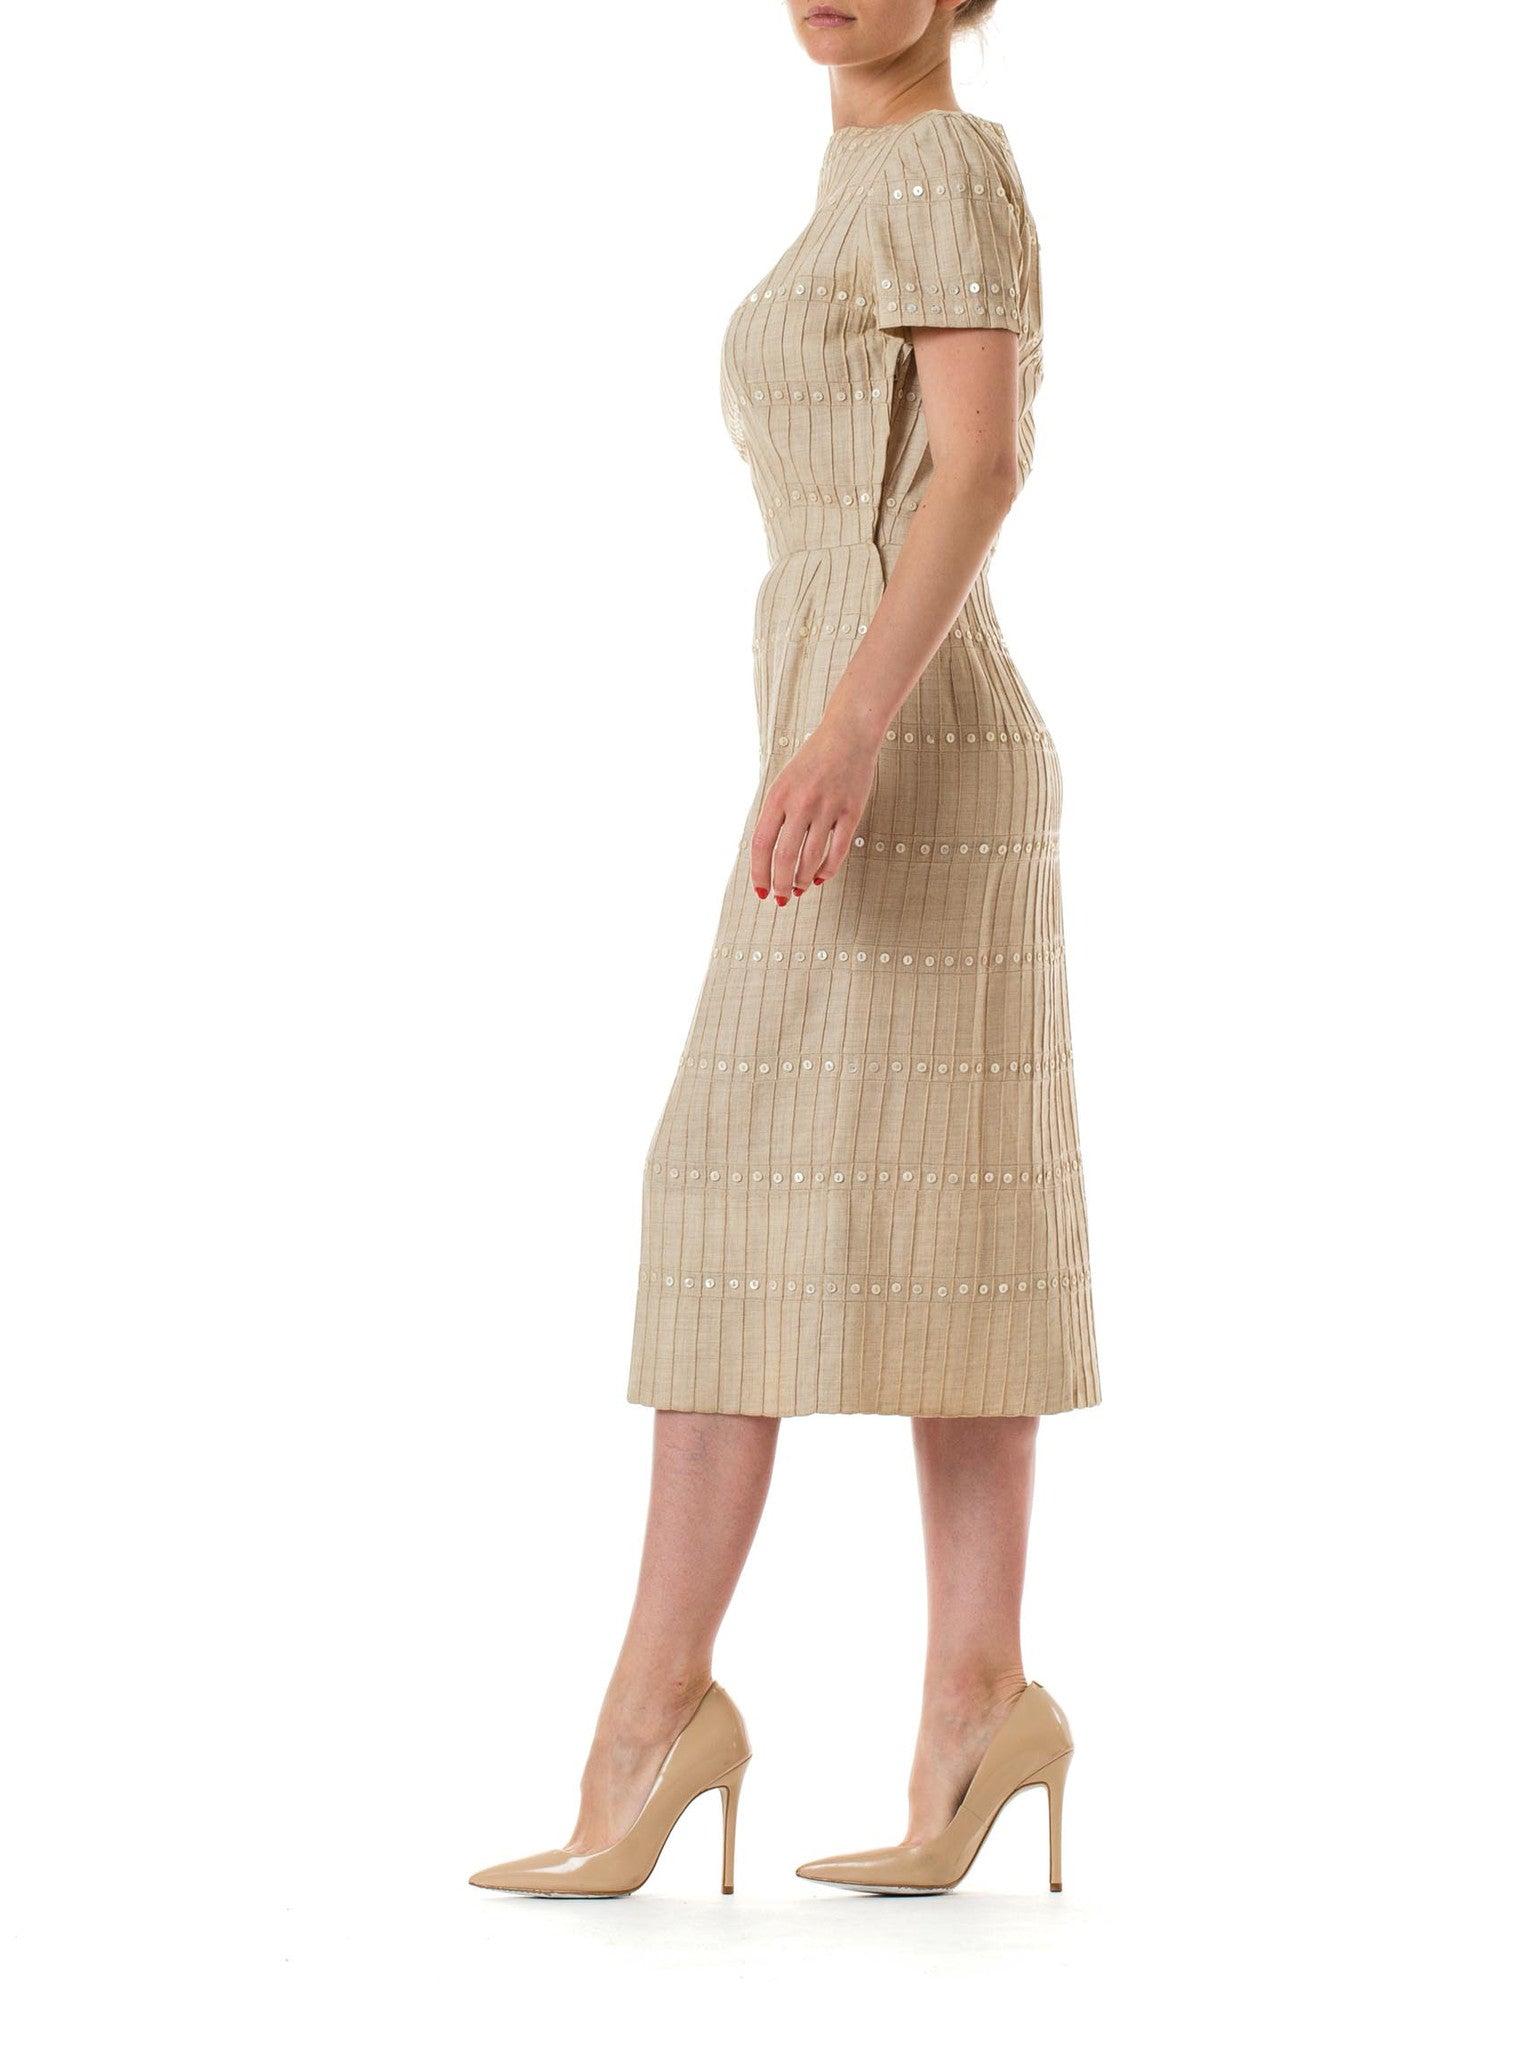 1950S Beige Linen Pintucked Day Dress With Button Embellishment